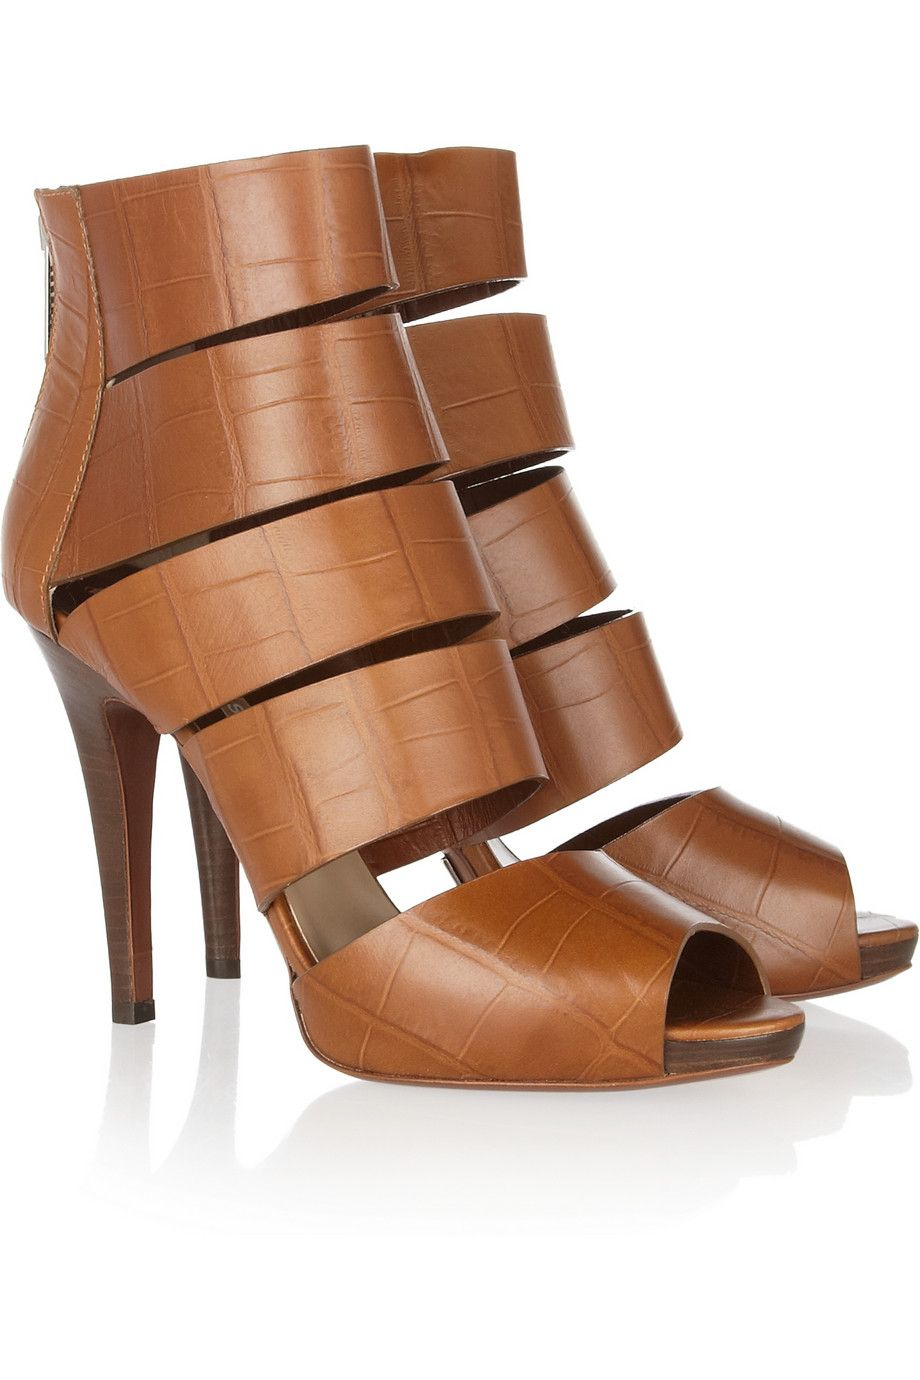 50d7f2cfa6f Michael Kors Croceffect Leather Sandals in Brown